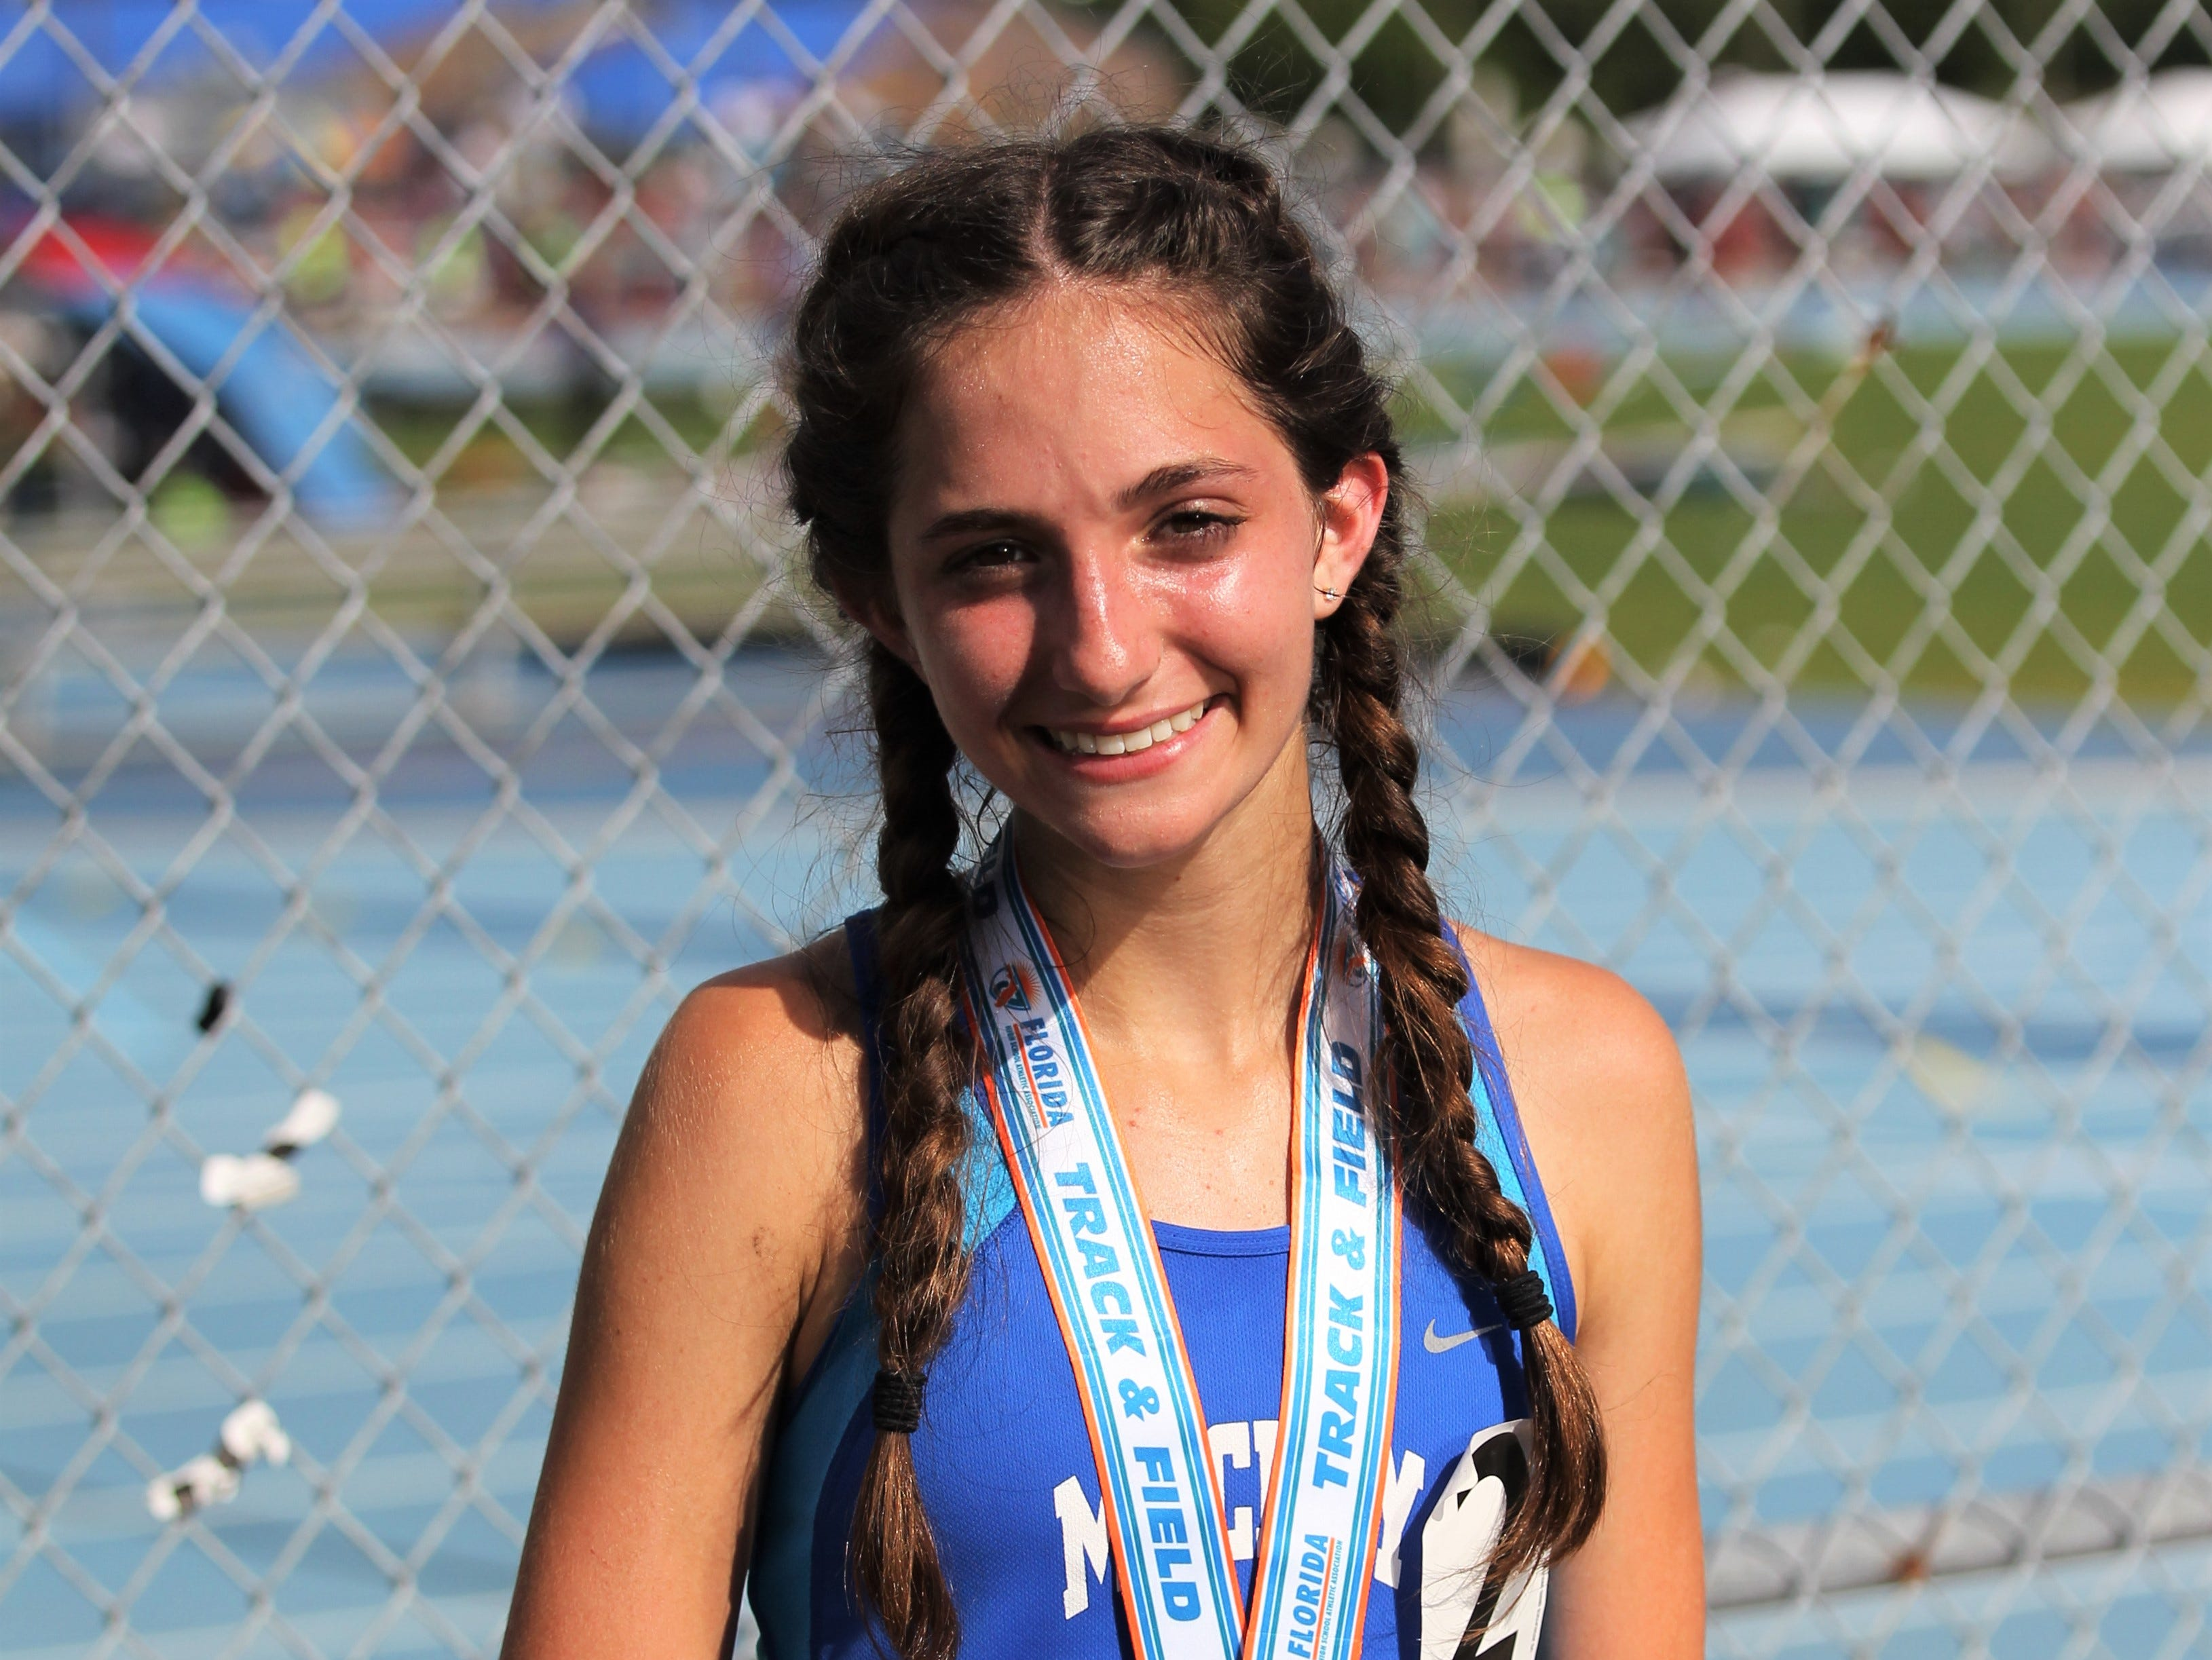 Maclay eighth-grader Ella Porcher won a silver medal in the Class 1A 1600m run at the FHSAA Track and Field State Championships at UNF's Hodges Stadium in Jacksonville on May 4, 2019.